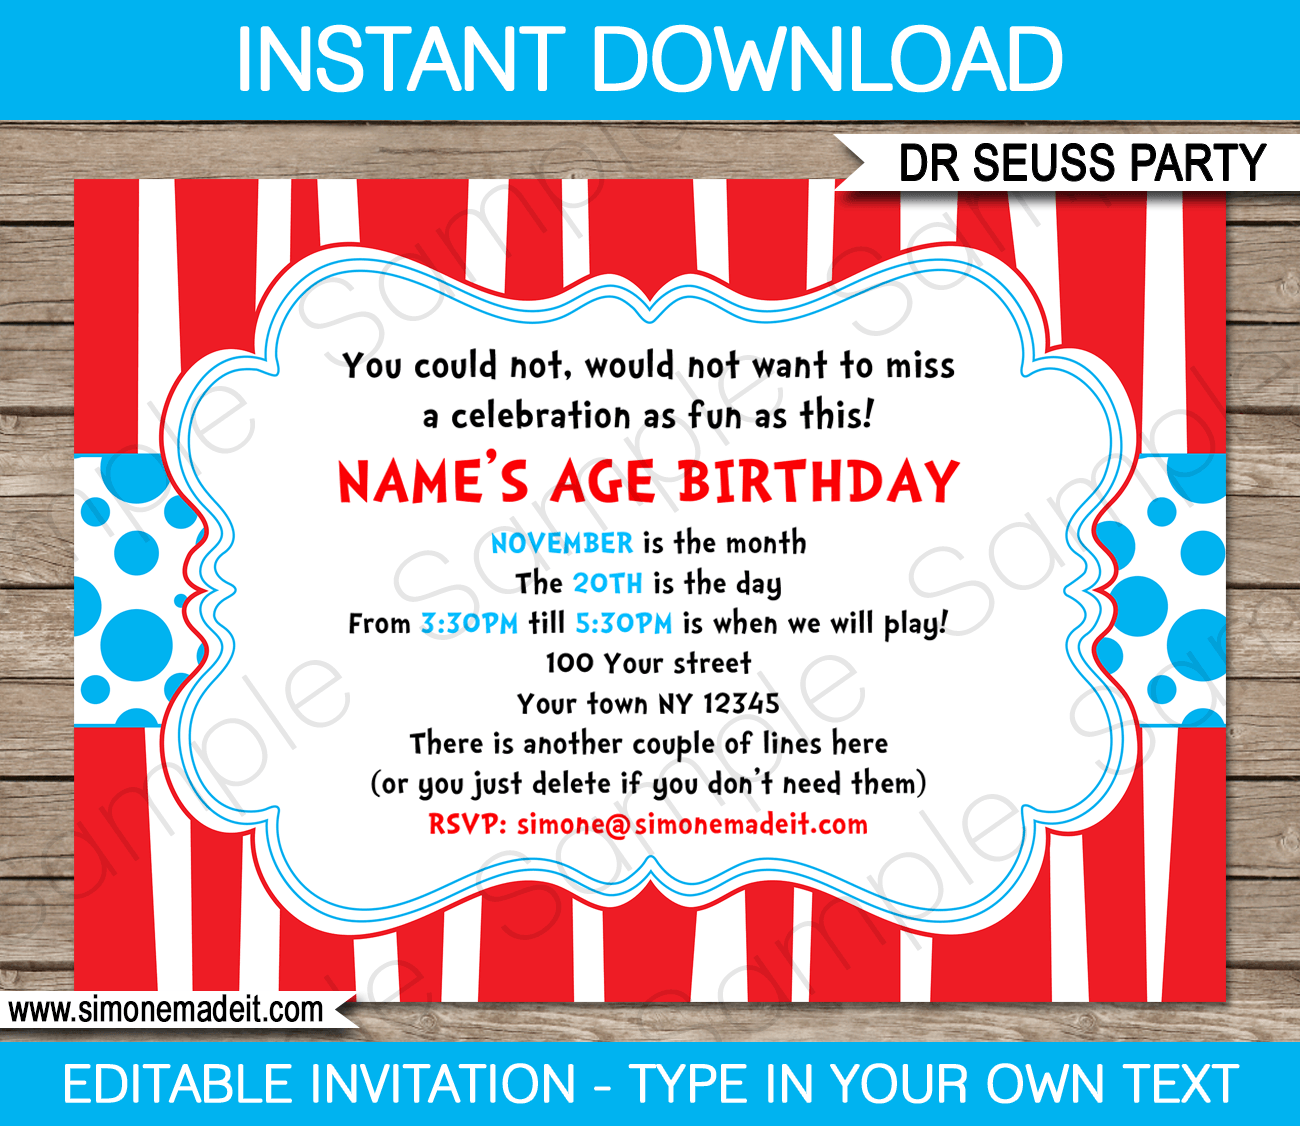 Dr seuss party invitations birthday party template dr seuss party invitations template stopboris Images